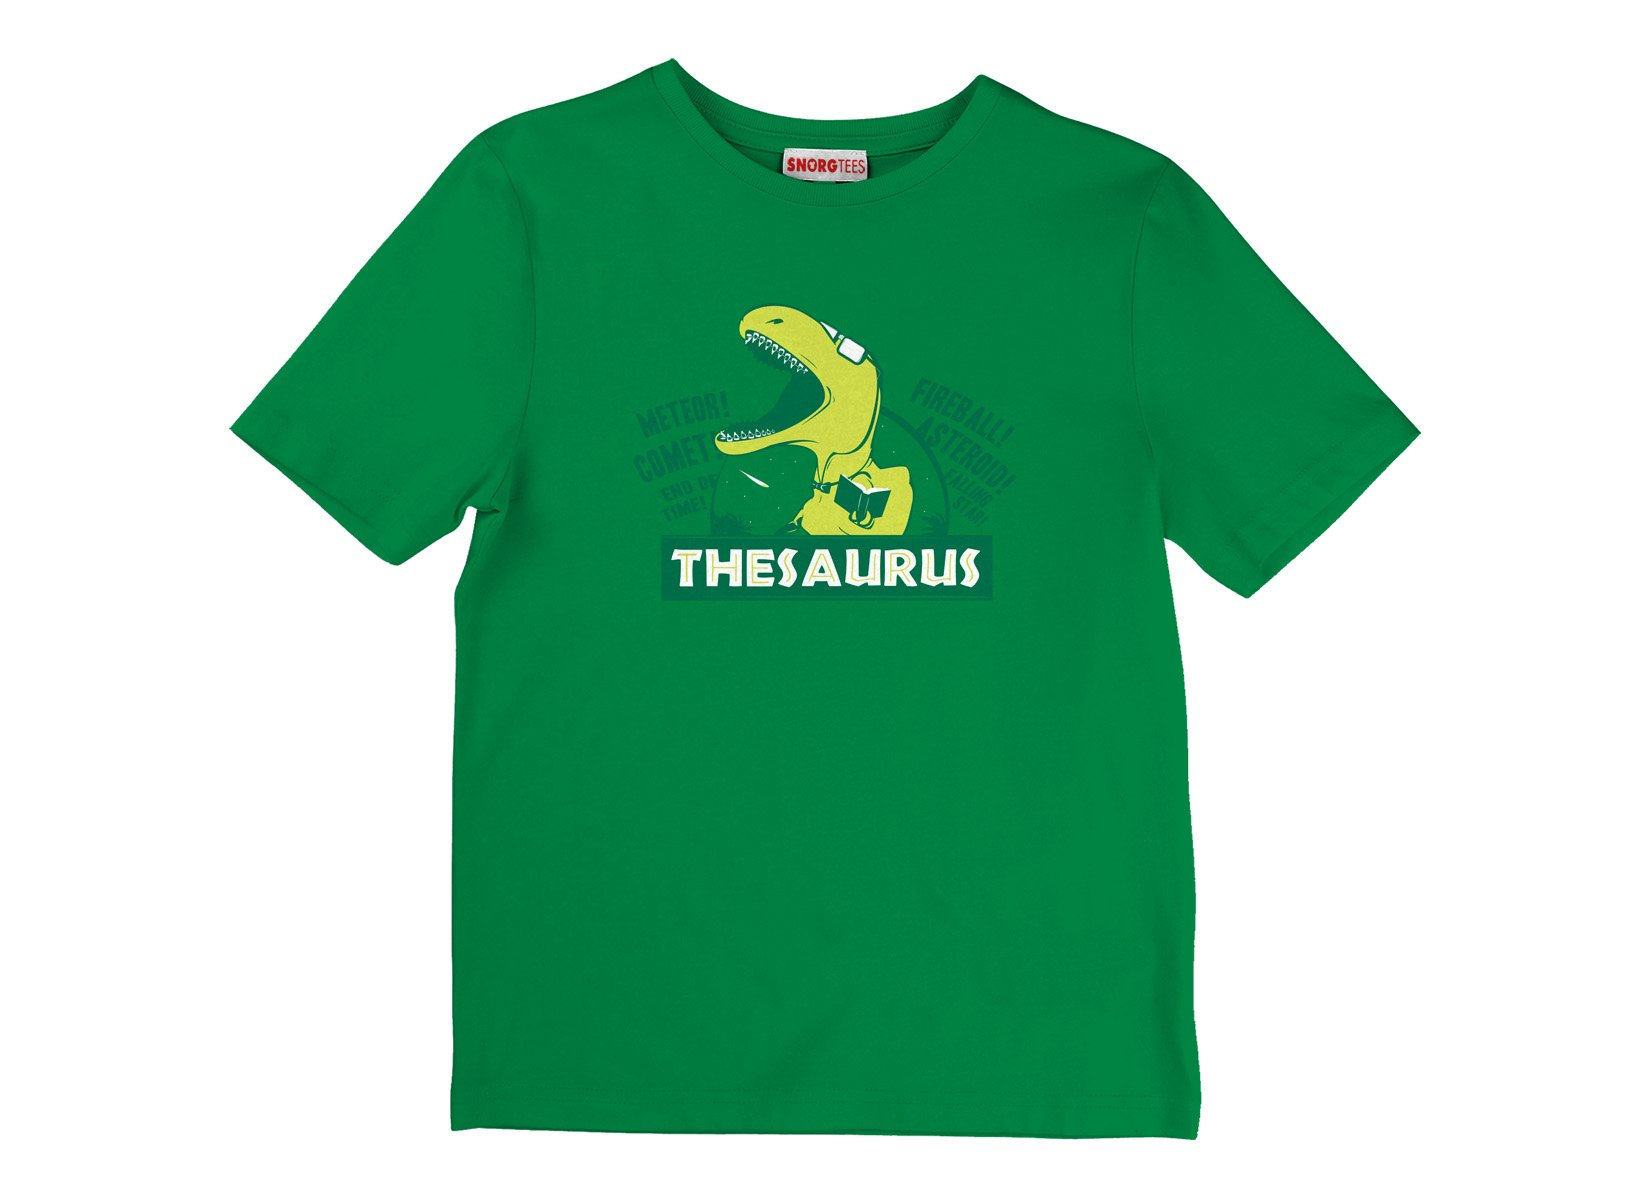 Thesaurus on Kids T-Shirt